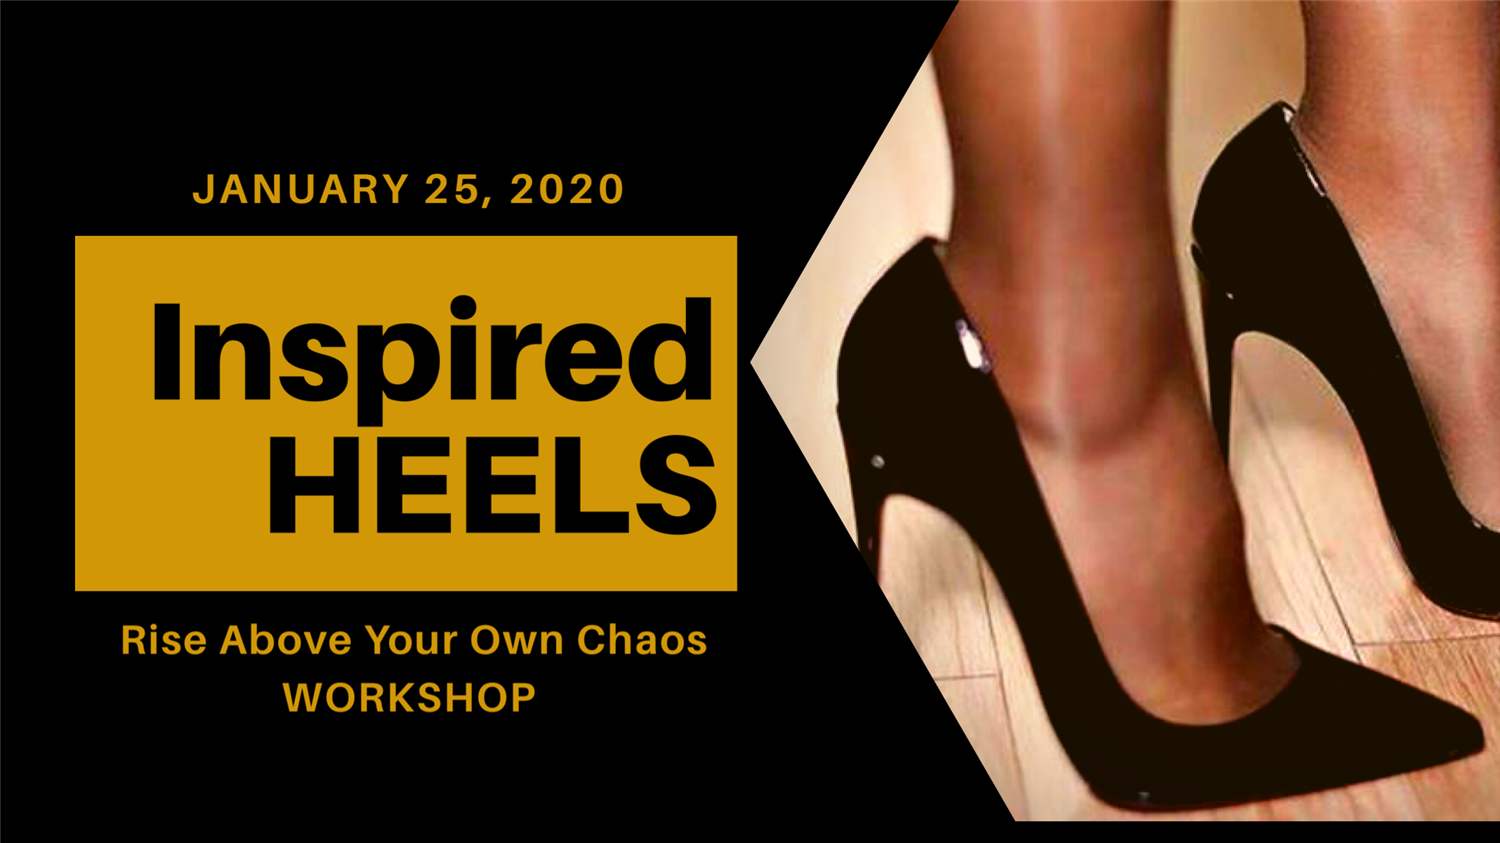 Inspired HEELS Rise Above Your Own Chaos on Jan 25, 09:00@Premier Inn Sheffield City Centre - Buy tickets and Get information on www.gincigaz.com